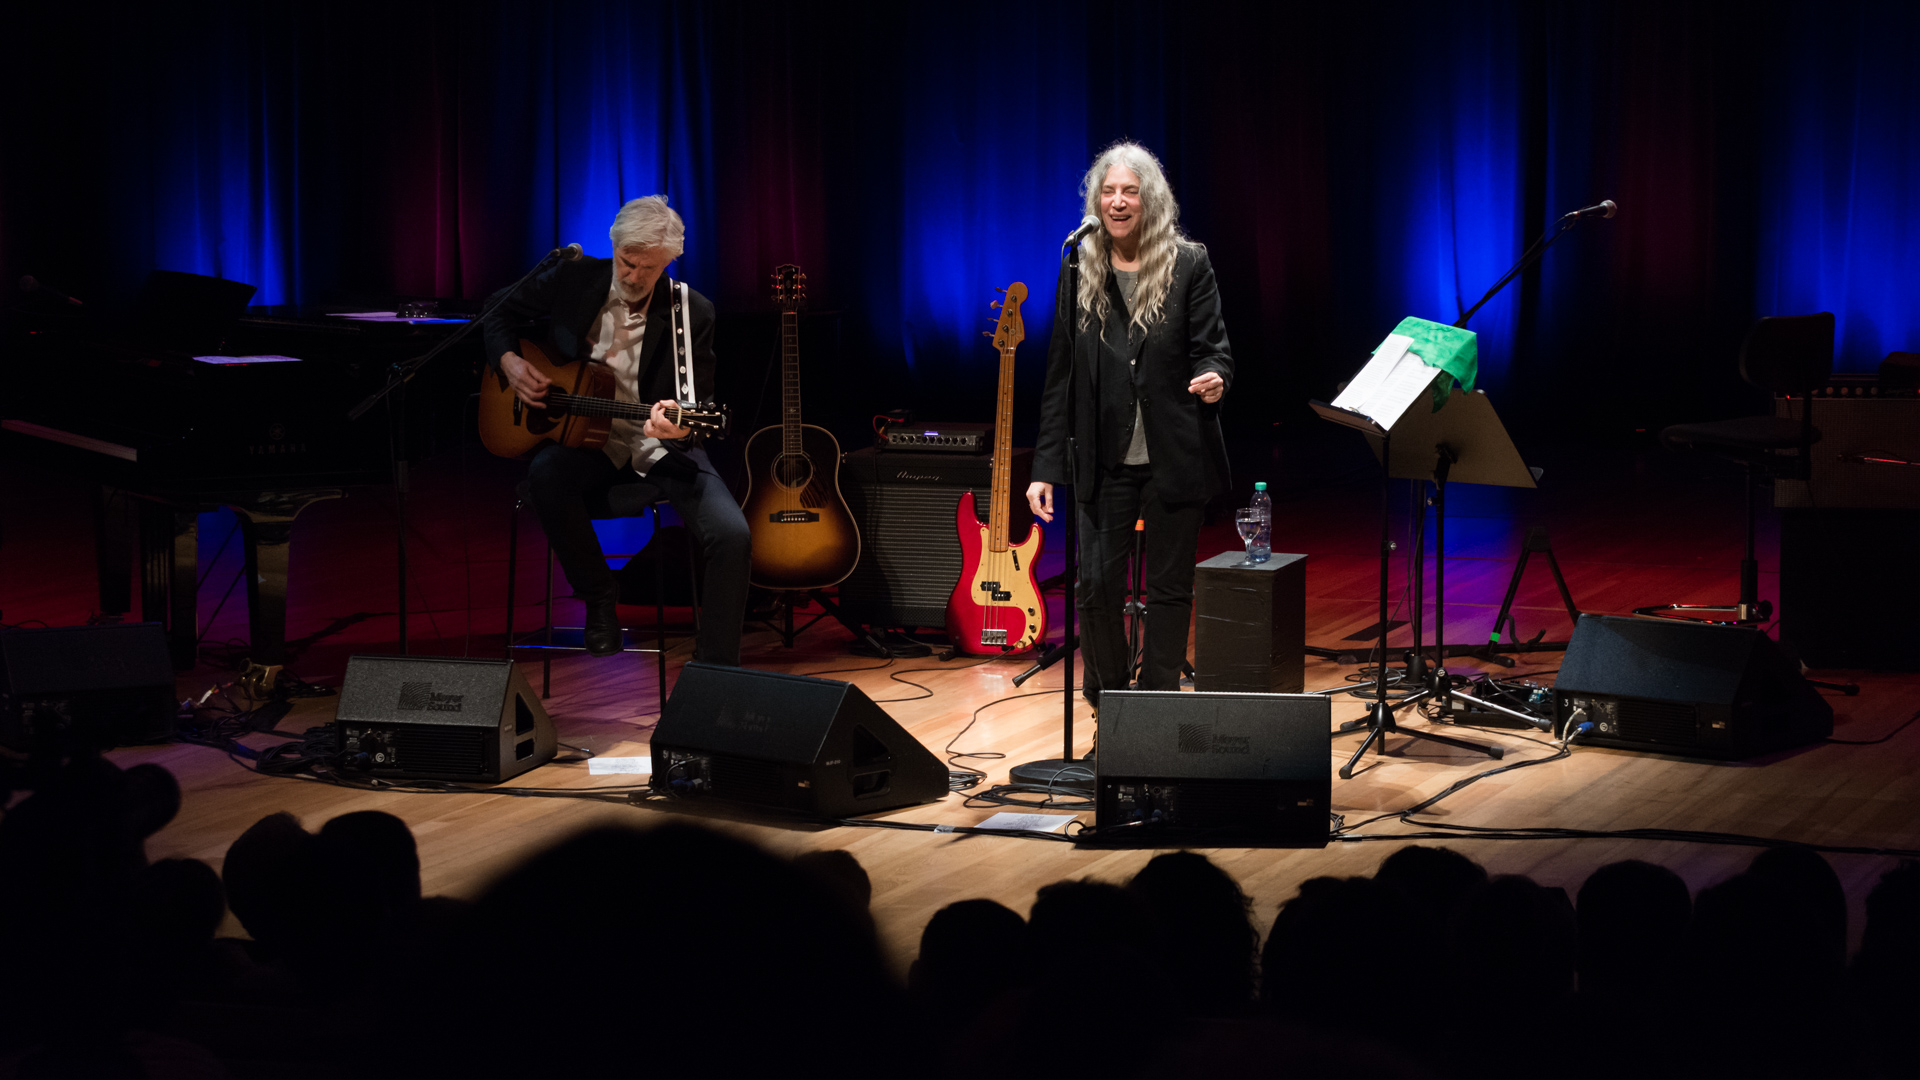 Patti Smith junto a su histórico guitarrista Tony Shanahan